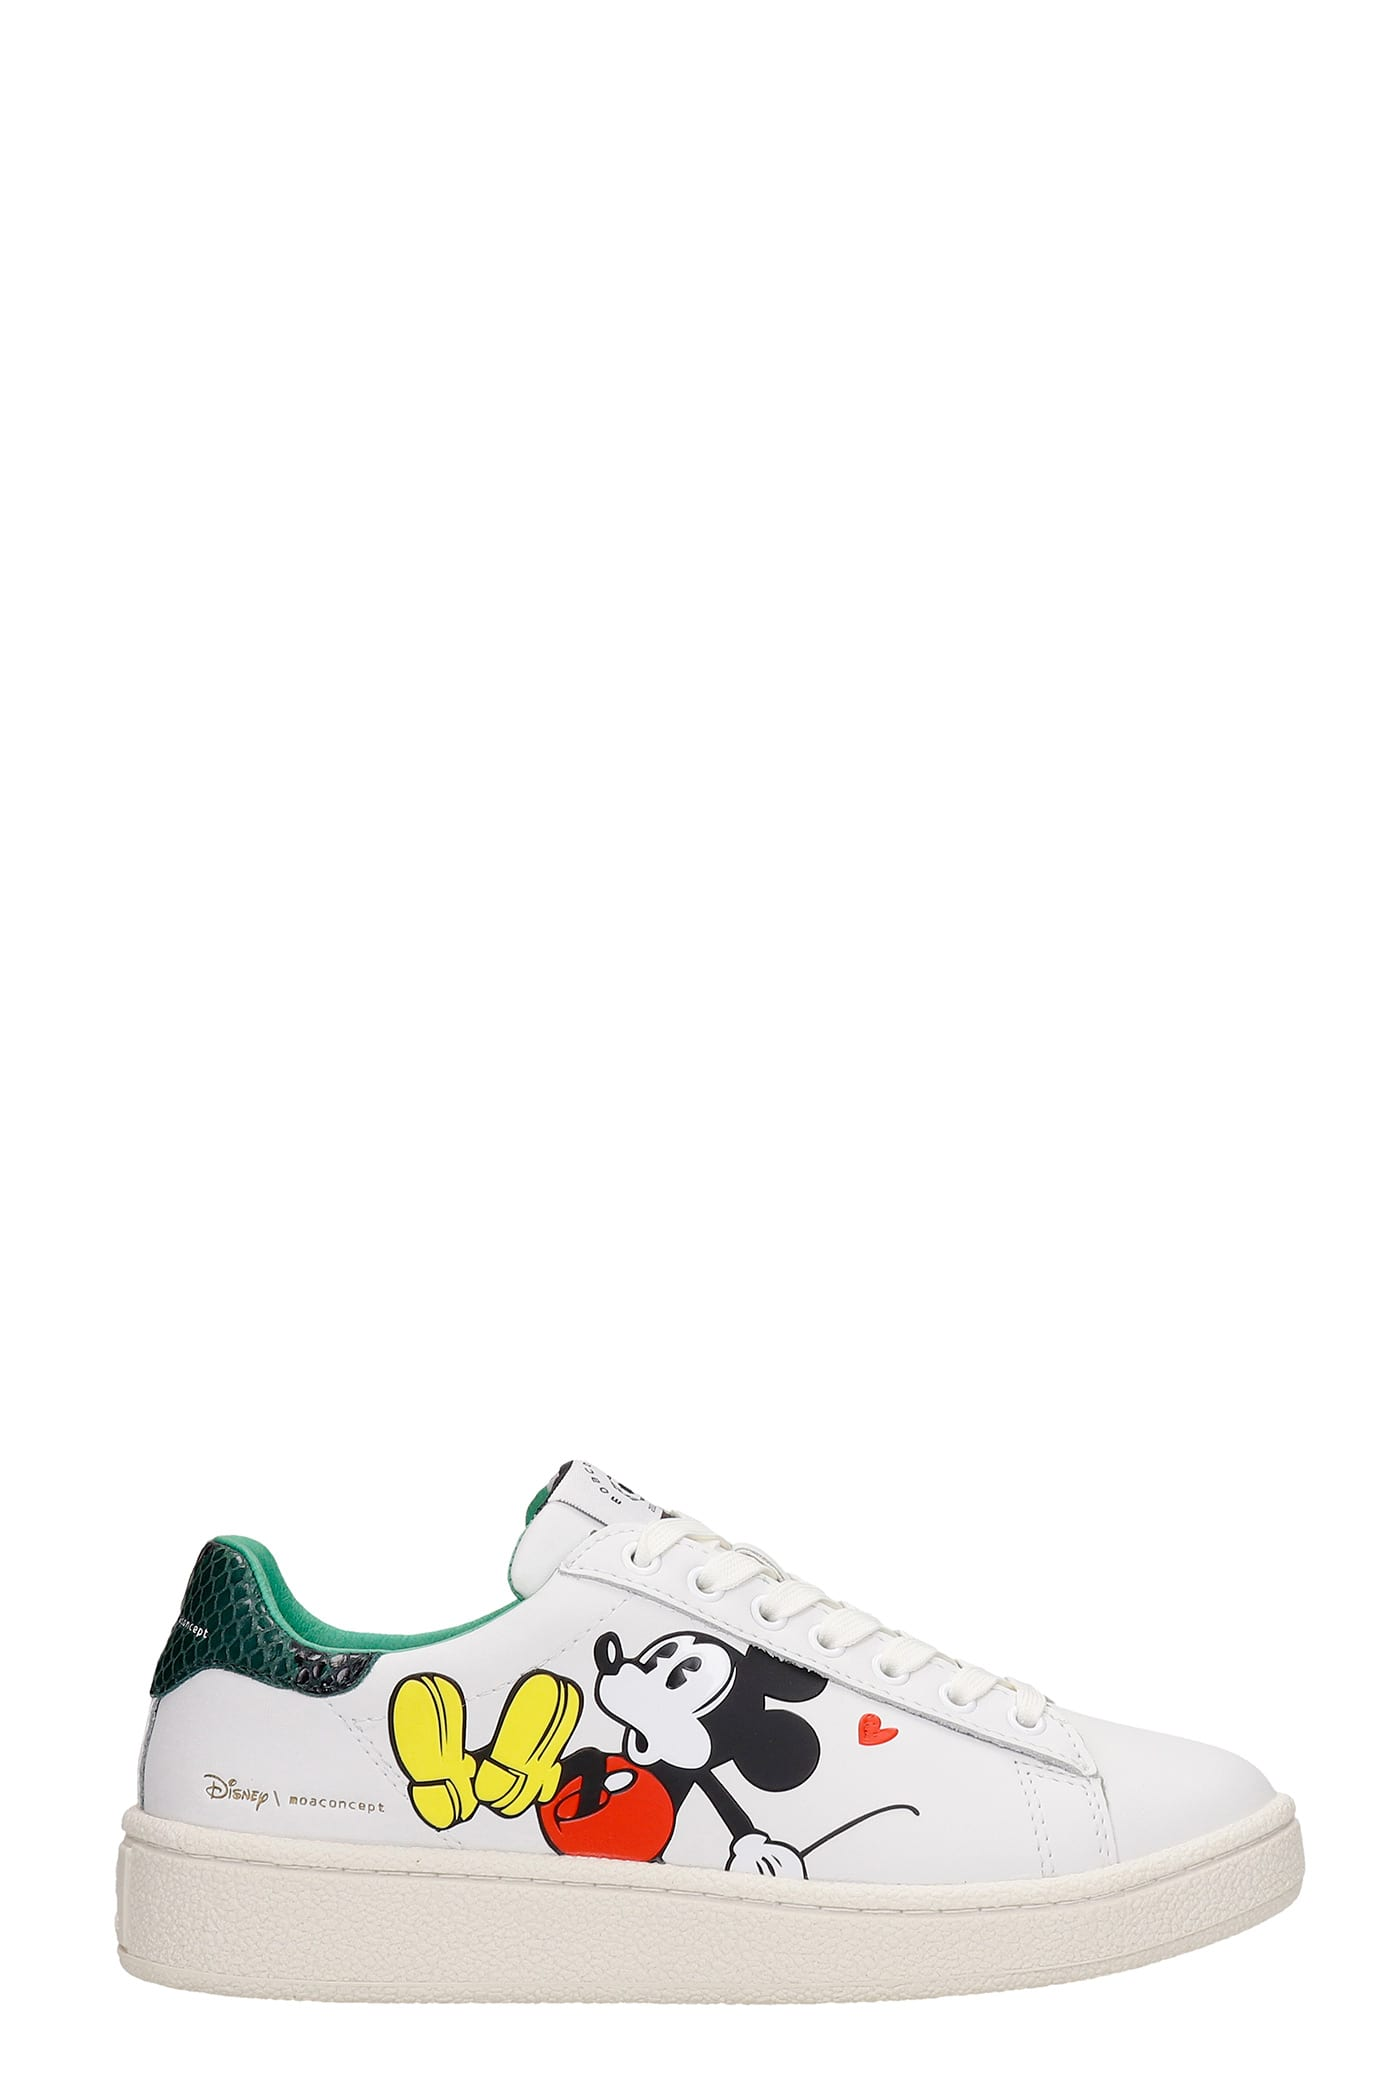 Moa Master Of Arts Leathers SNEAKERS IN WHITE LEATHER